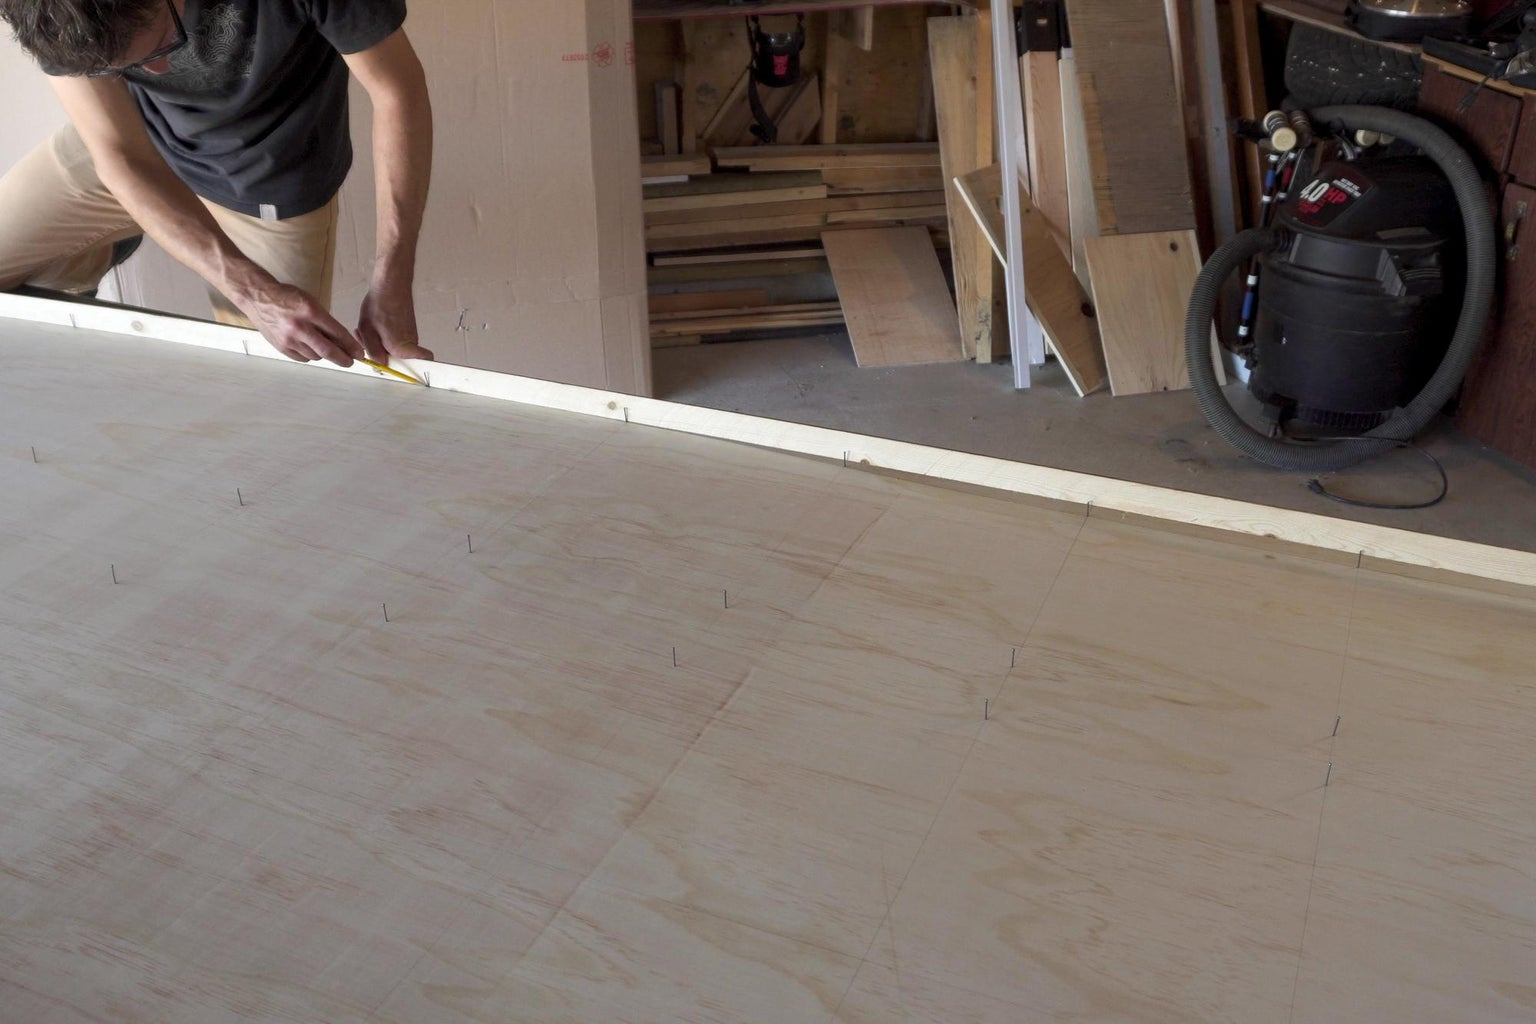 Nails + Long Bendy Strip of Wood = Nice Smooth Lines